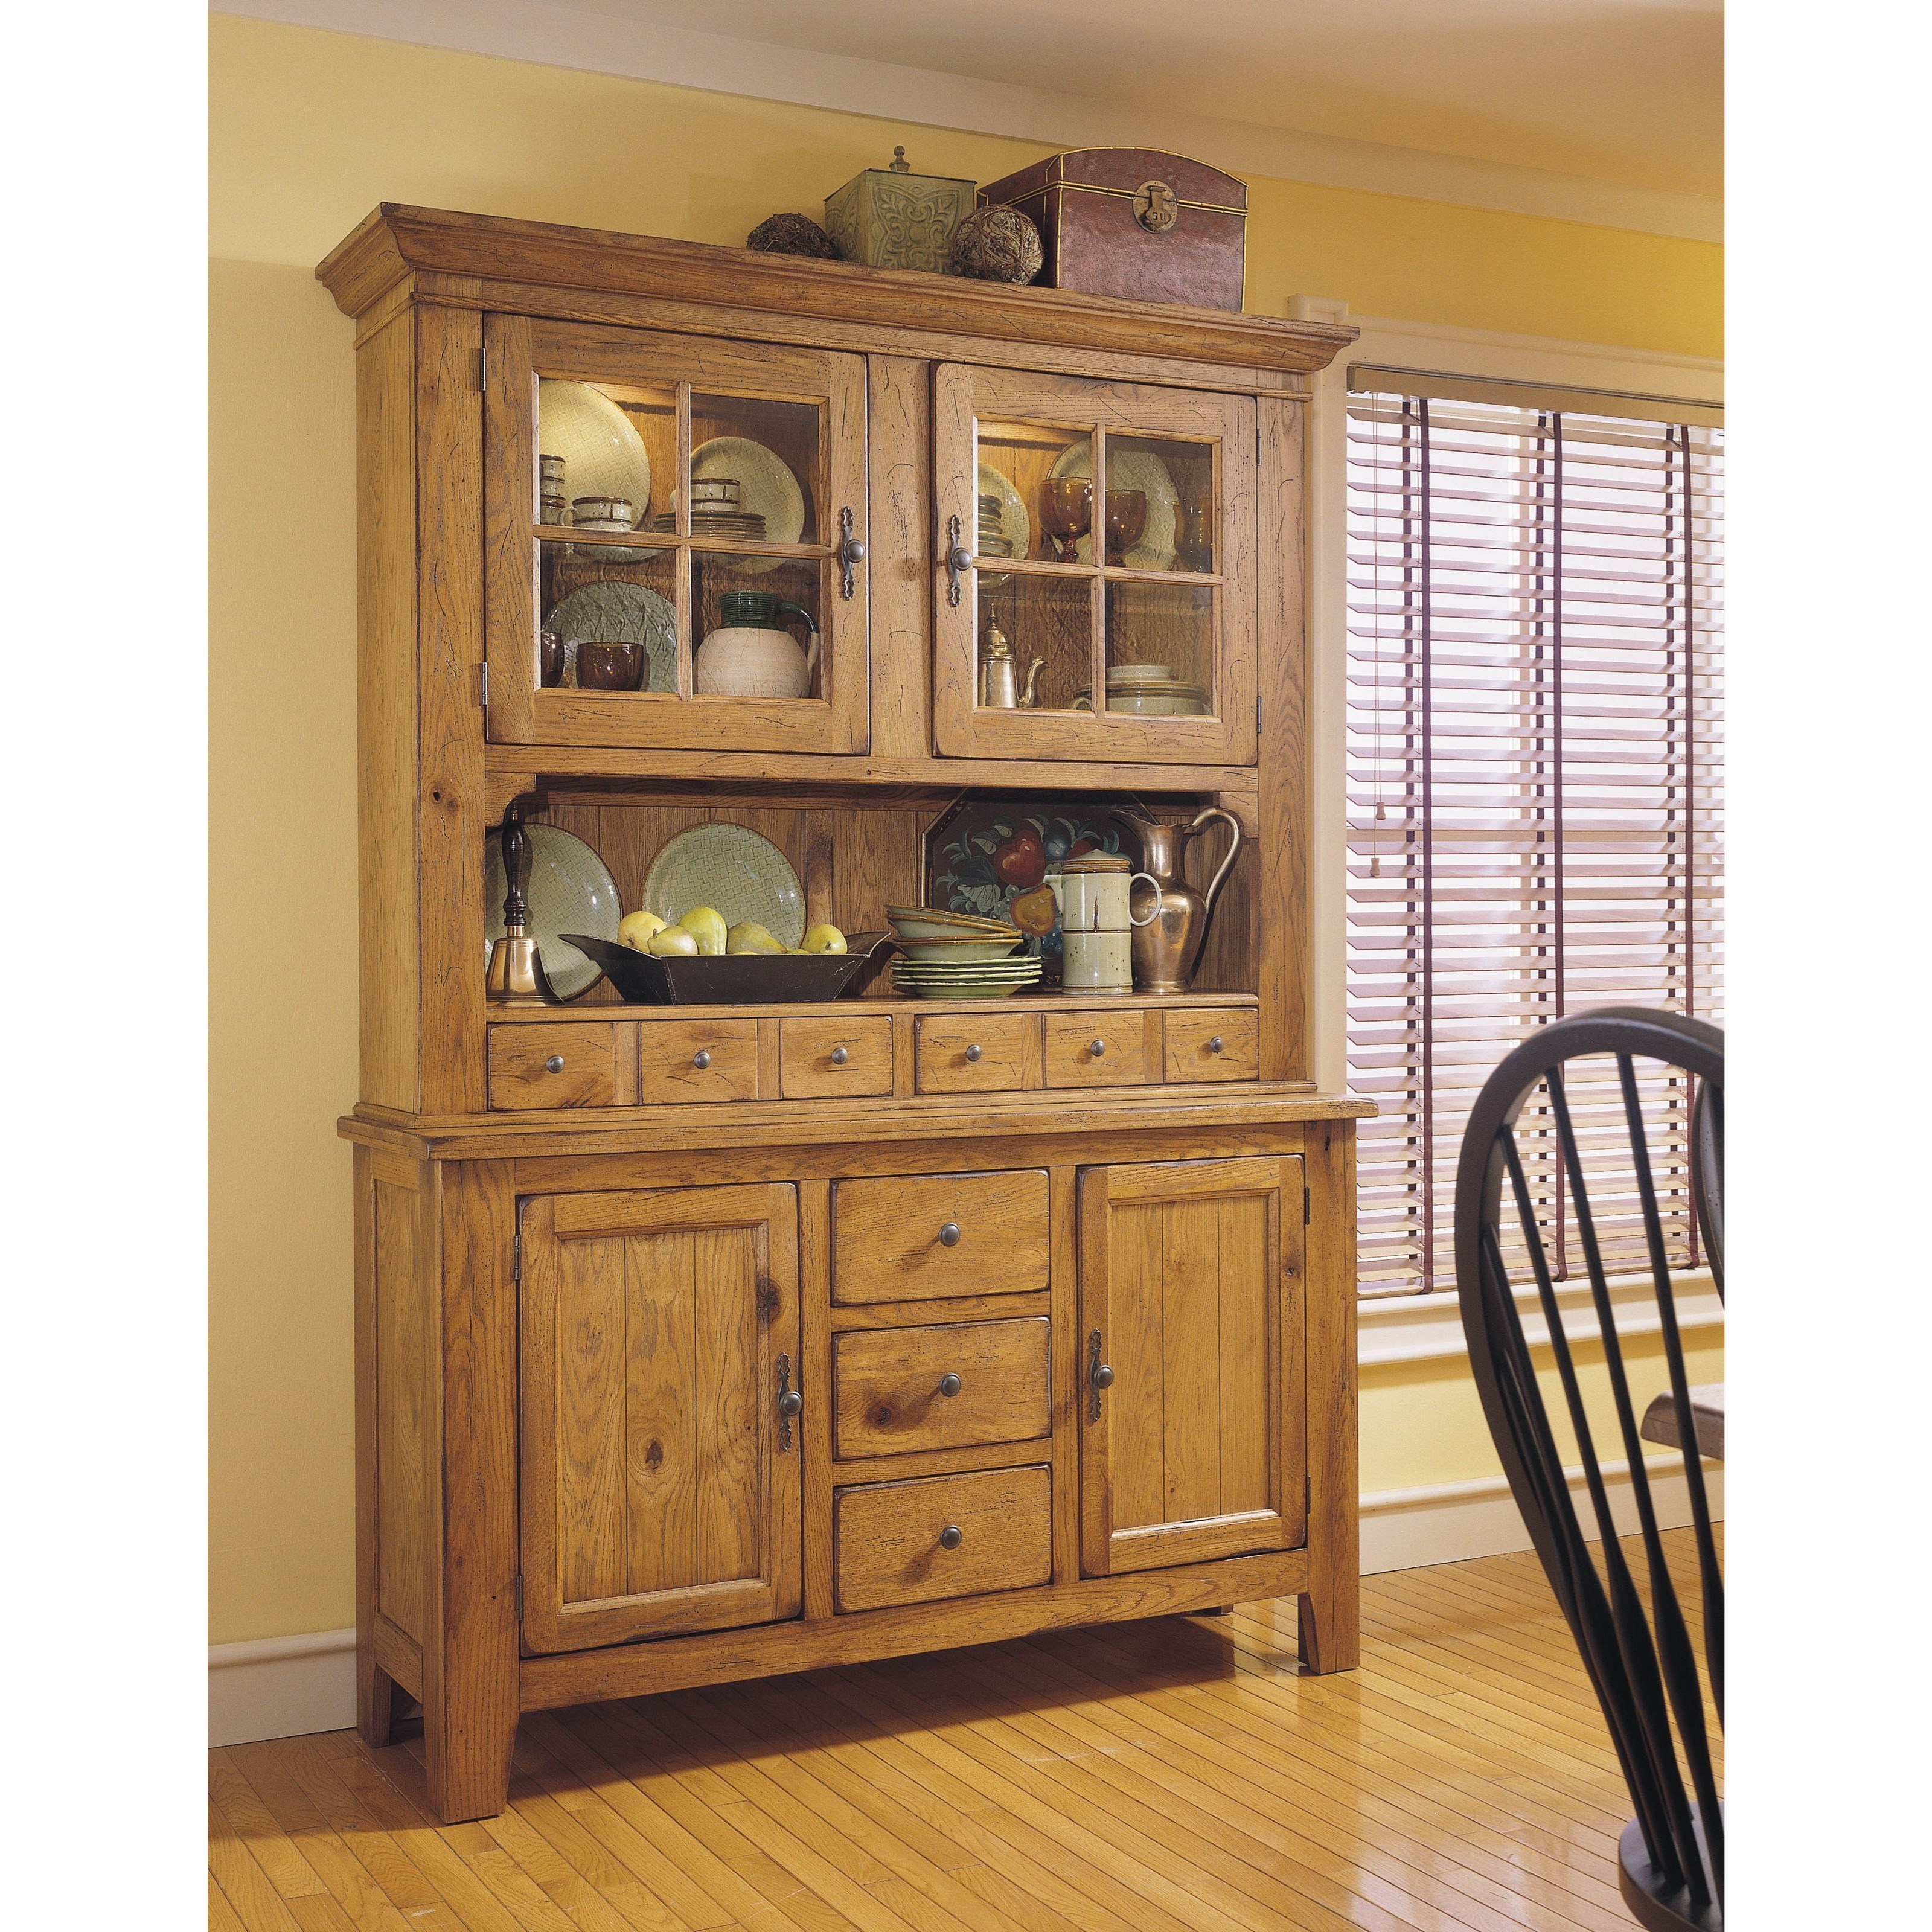 Merveilleux Broyhill Furniture Attic HeirloomsChina Hutch And Base